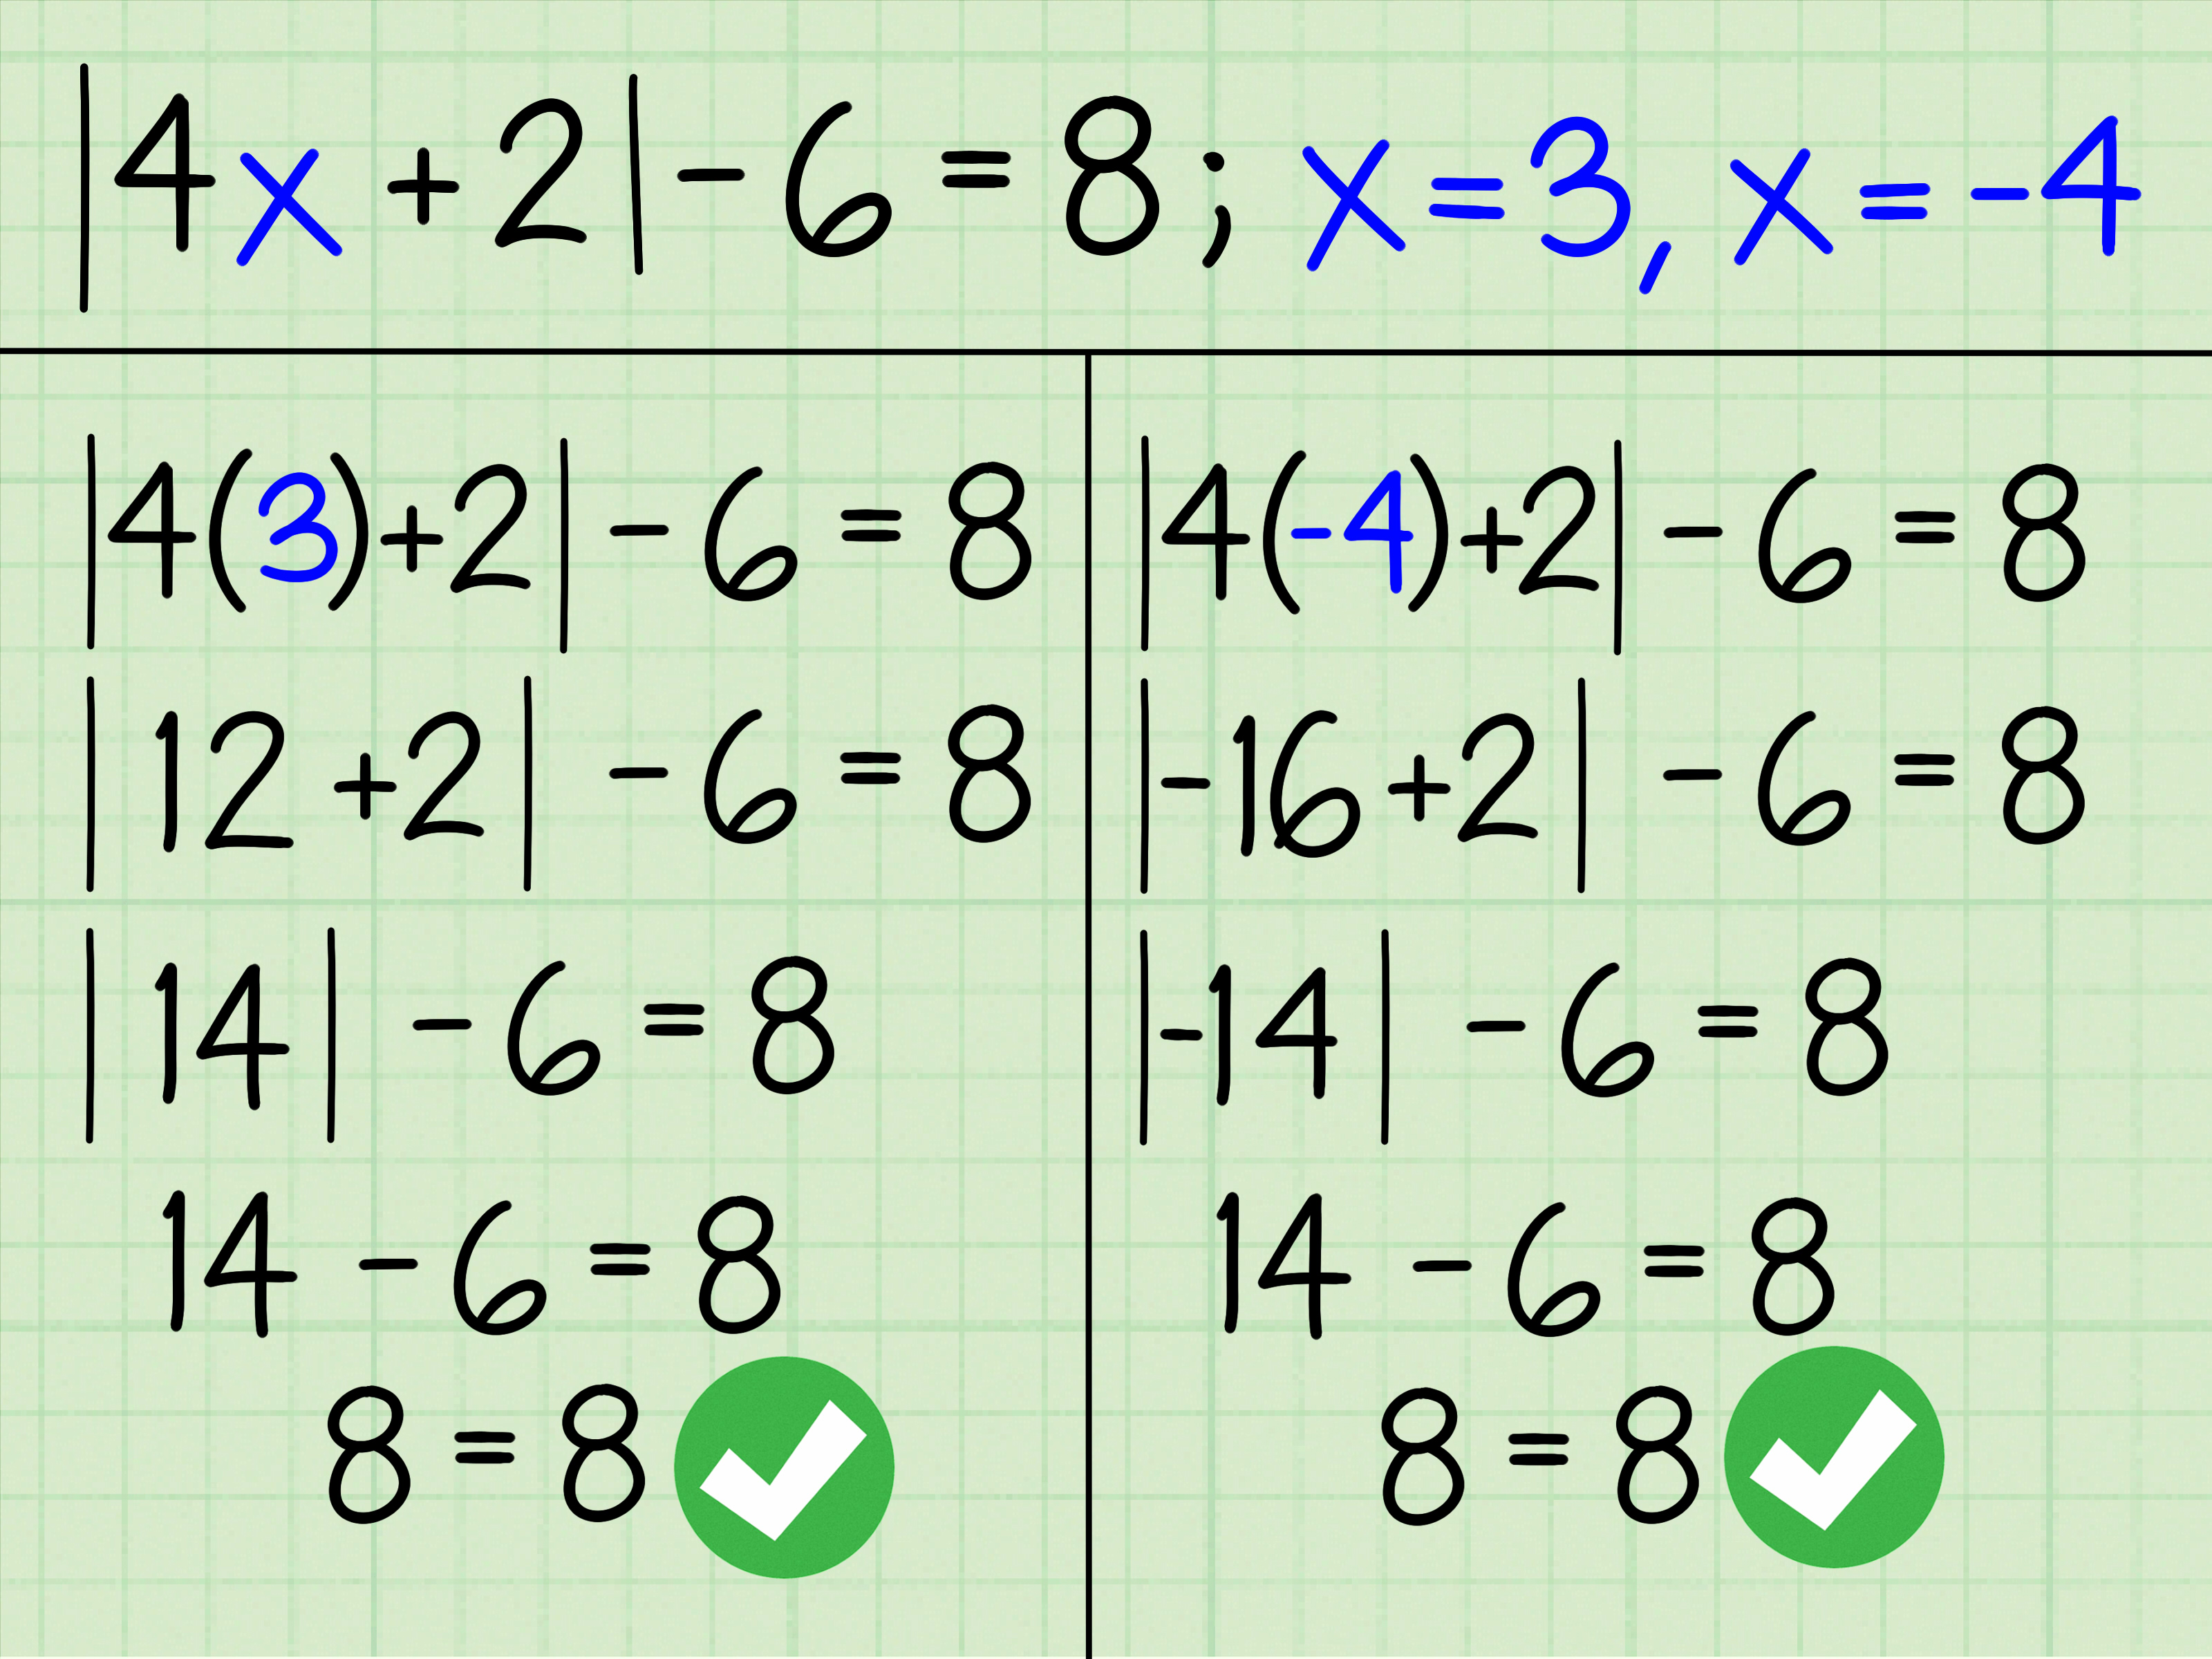 5 Ways To Solve For X